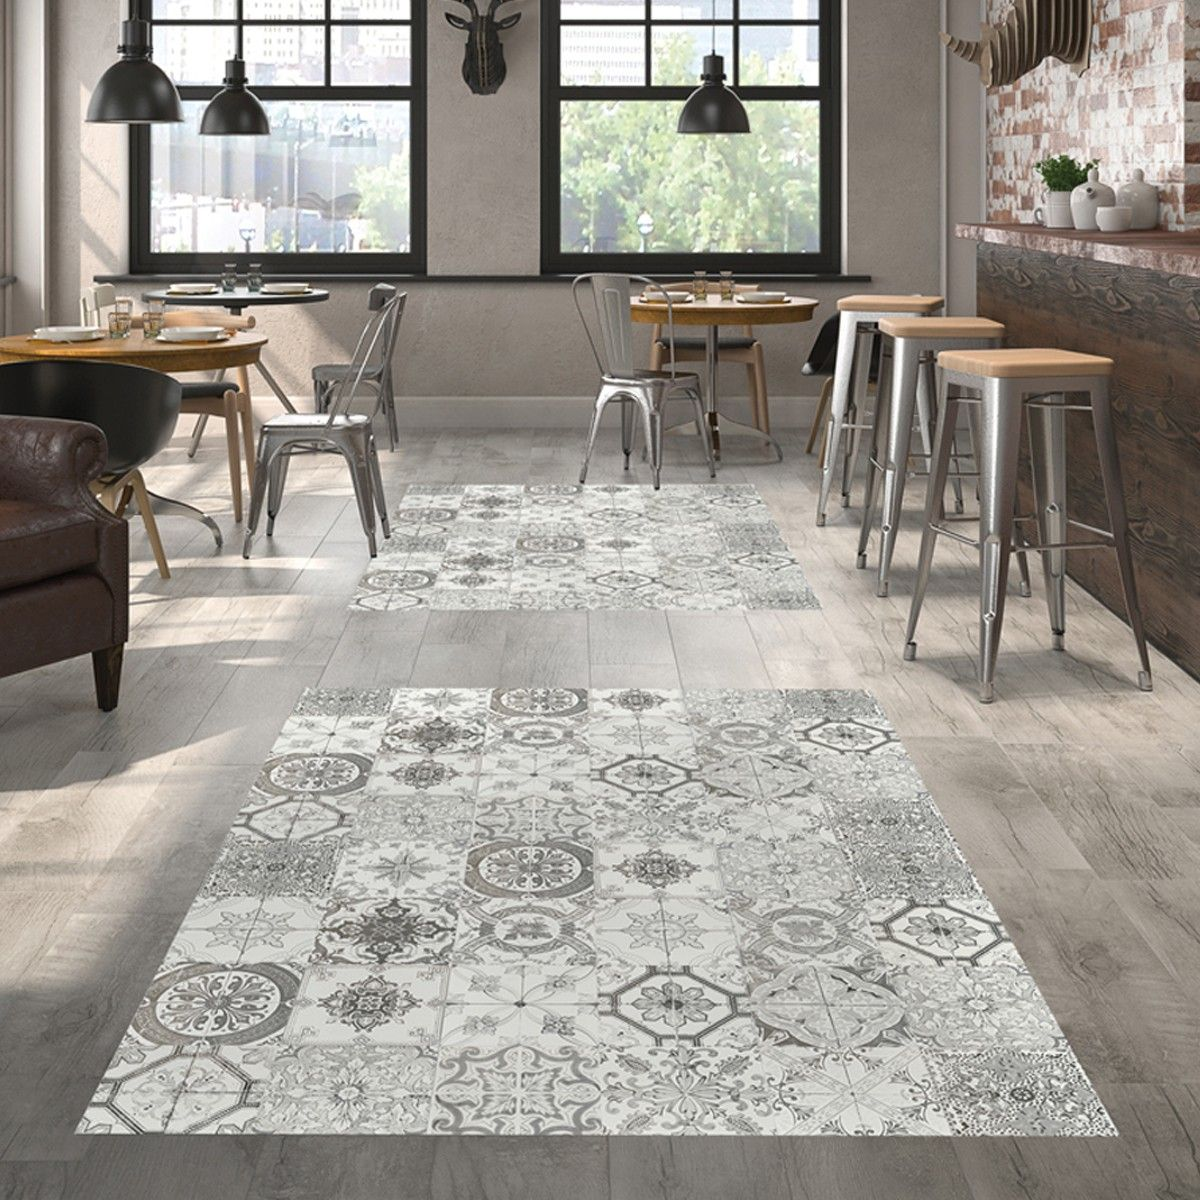 Crown tiles nikea matt grey from crown tiles noahs ark crown tiles nikea matt grey from crown tiles dailygadgetfo Image collections